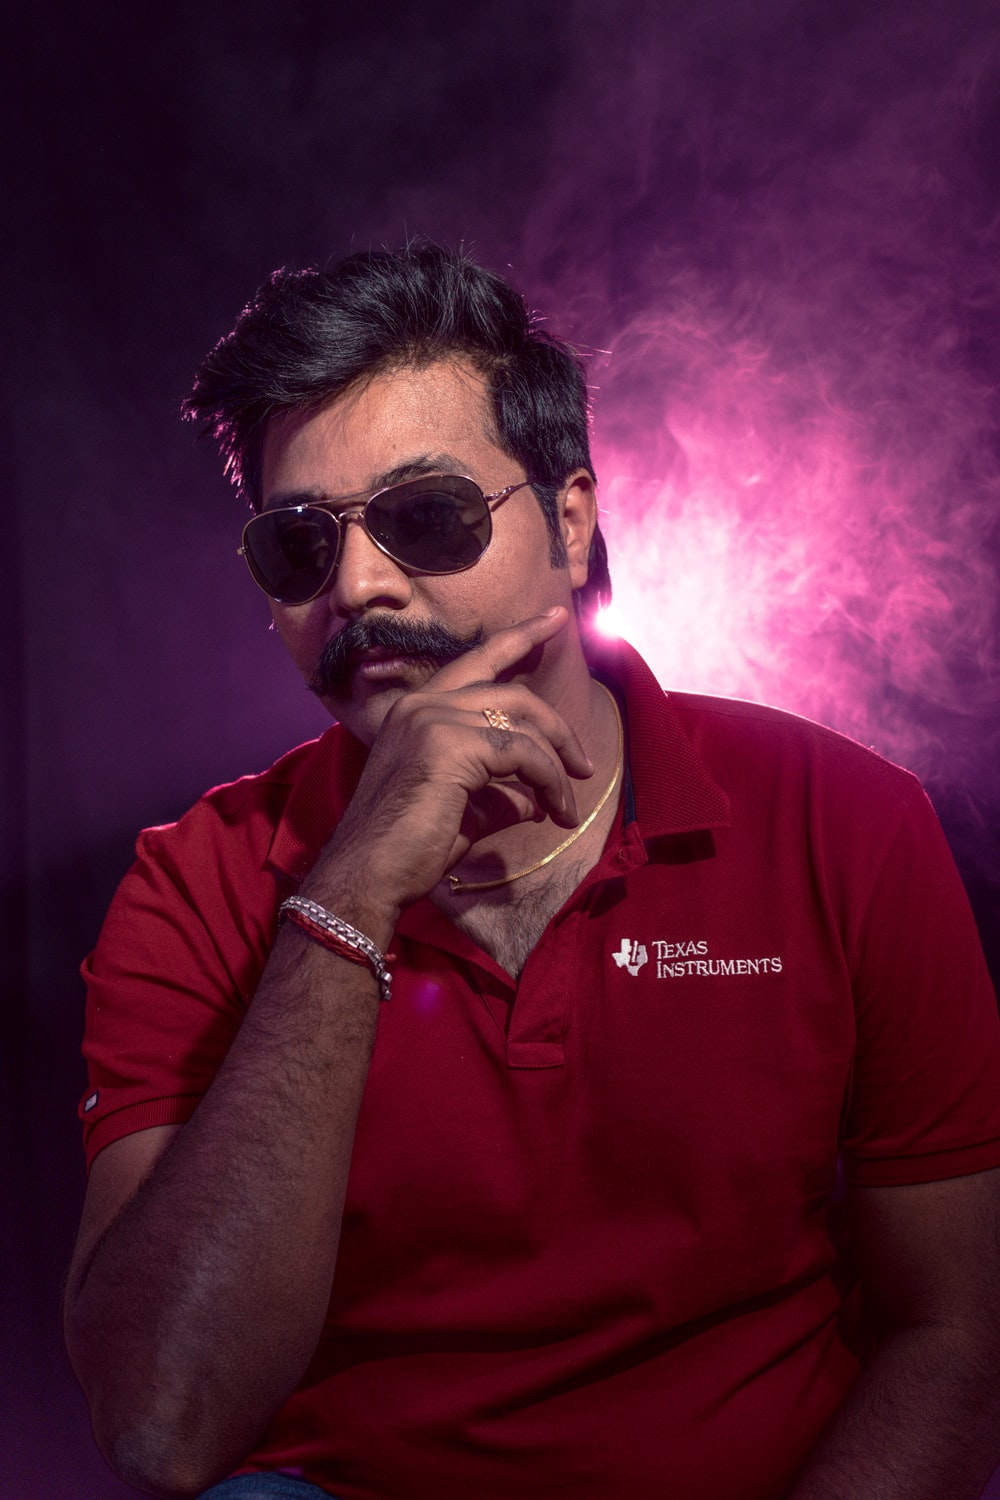 man wearing red polo shirt and black-framed Aviator-style sunglasses